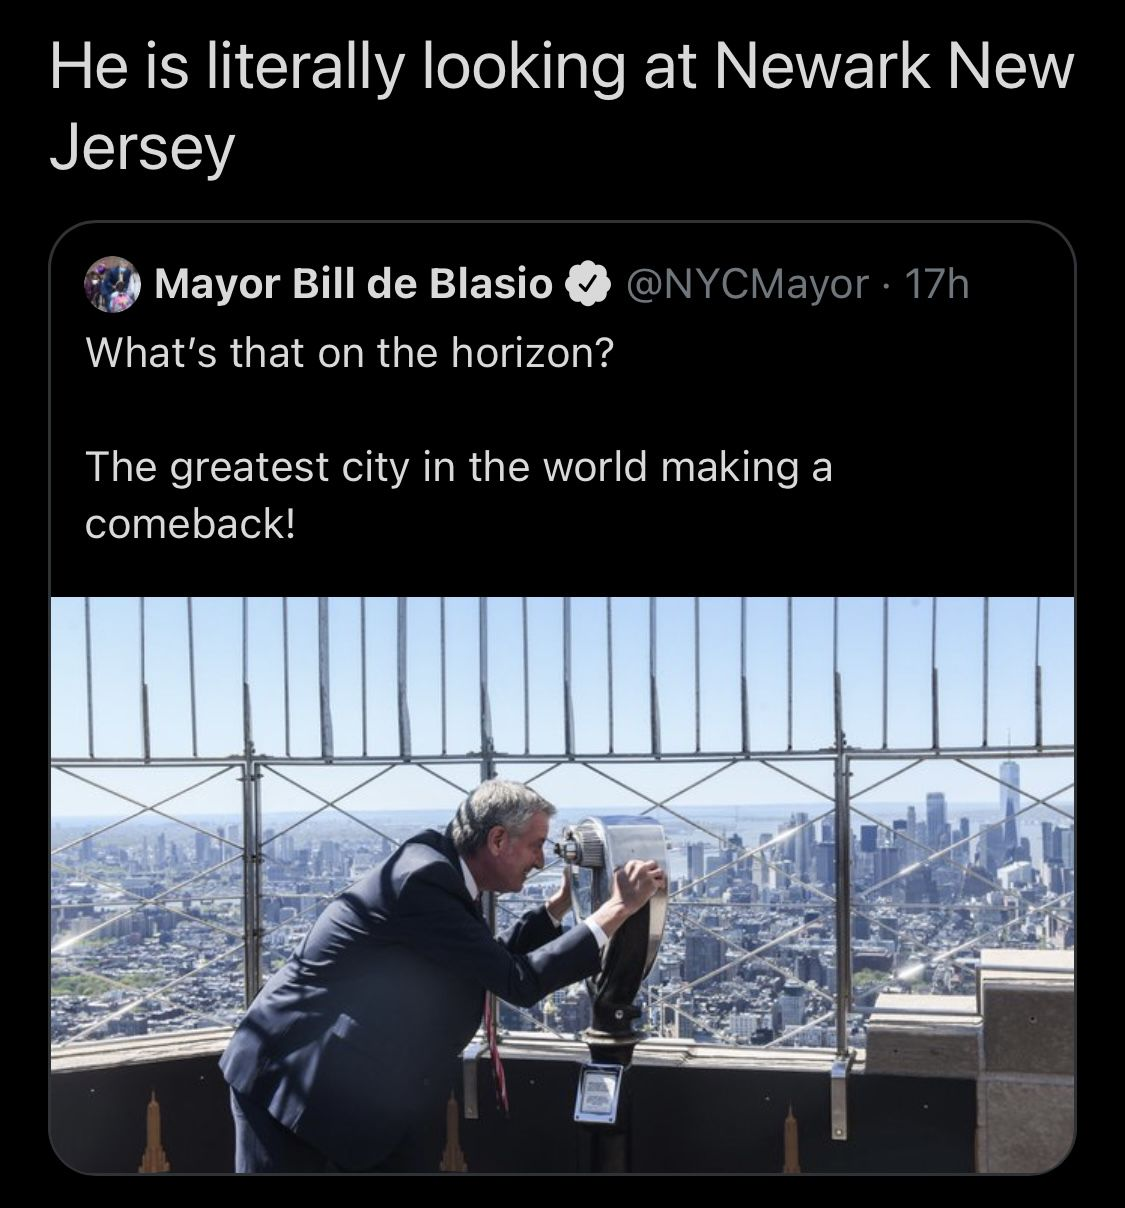 De Blasio looking at Newark greatest city on earth